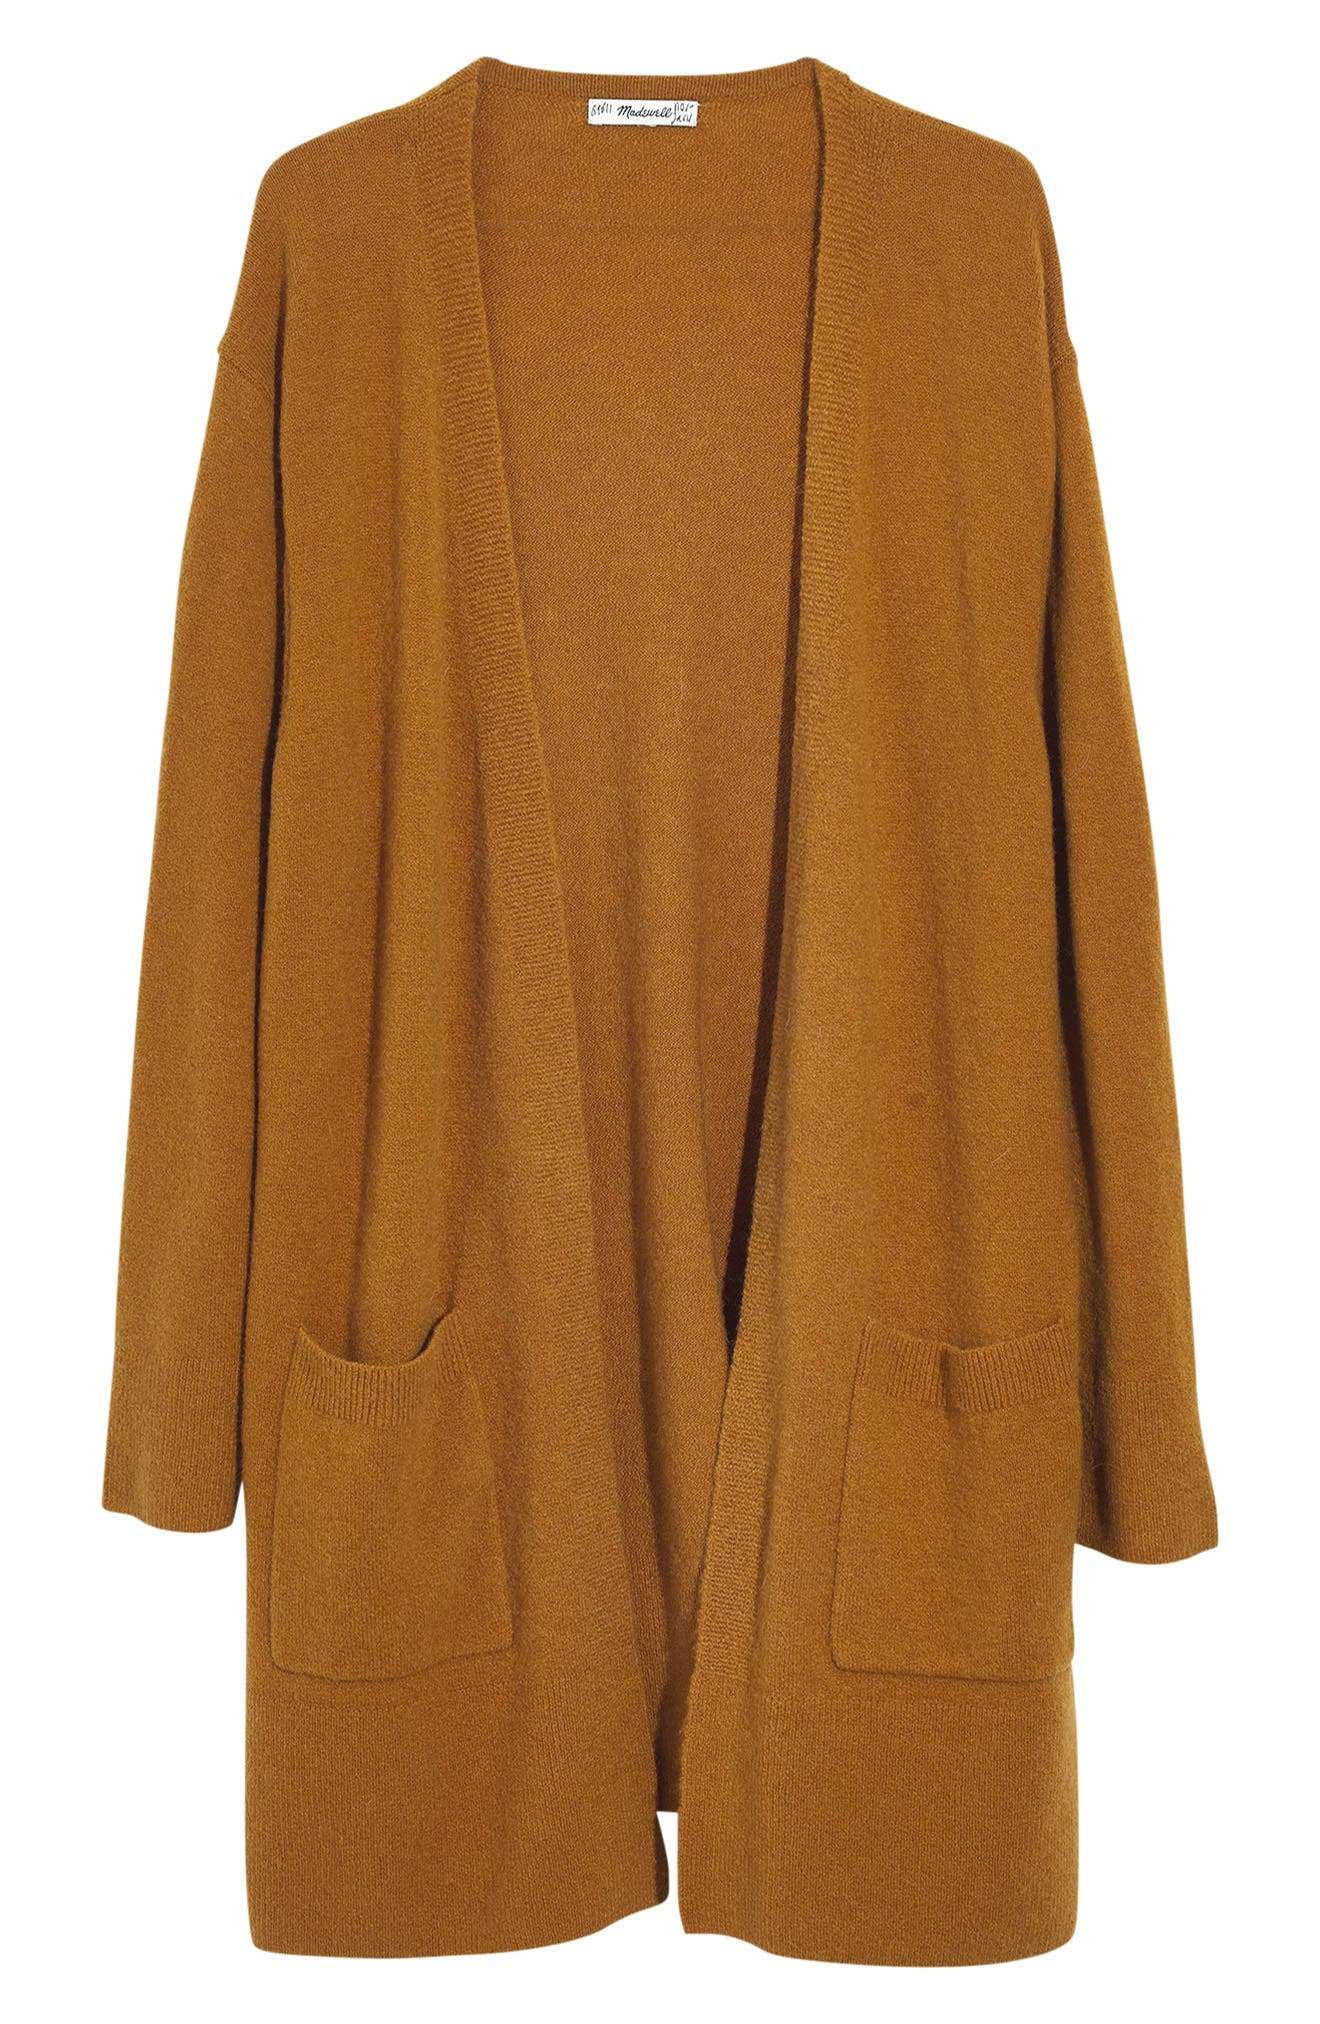 MADEWELL,                             Kent Cardigan Sweater,                             Alternate thumbnail 5, color,                             GOLDEN HARVEST